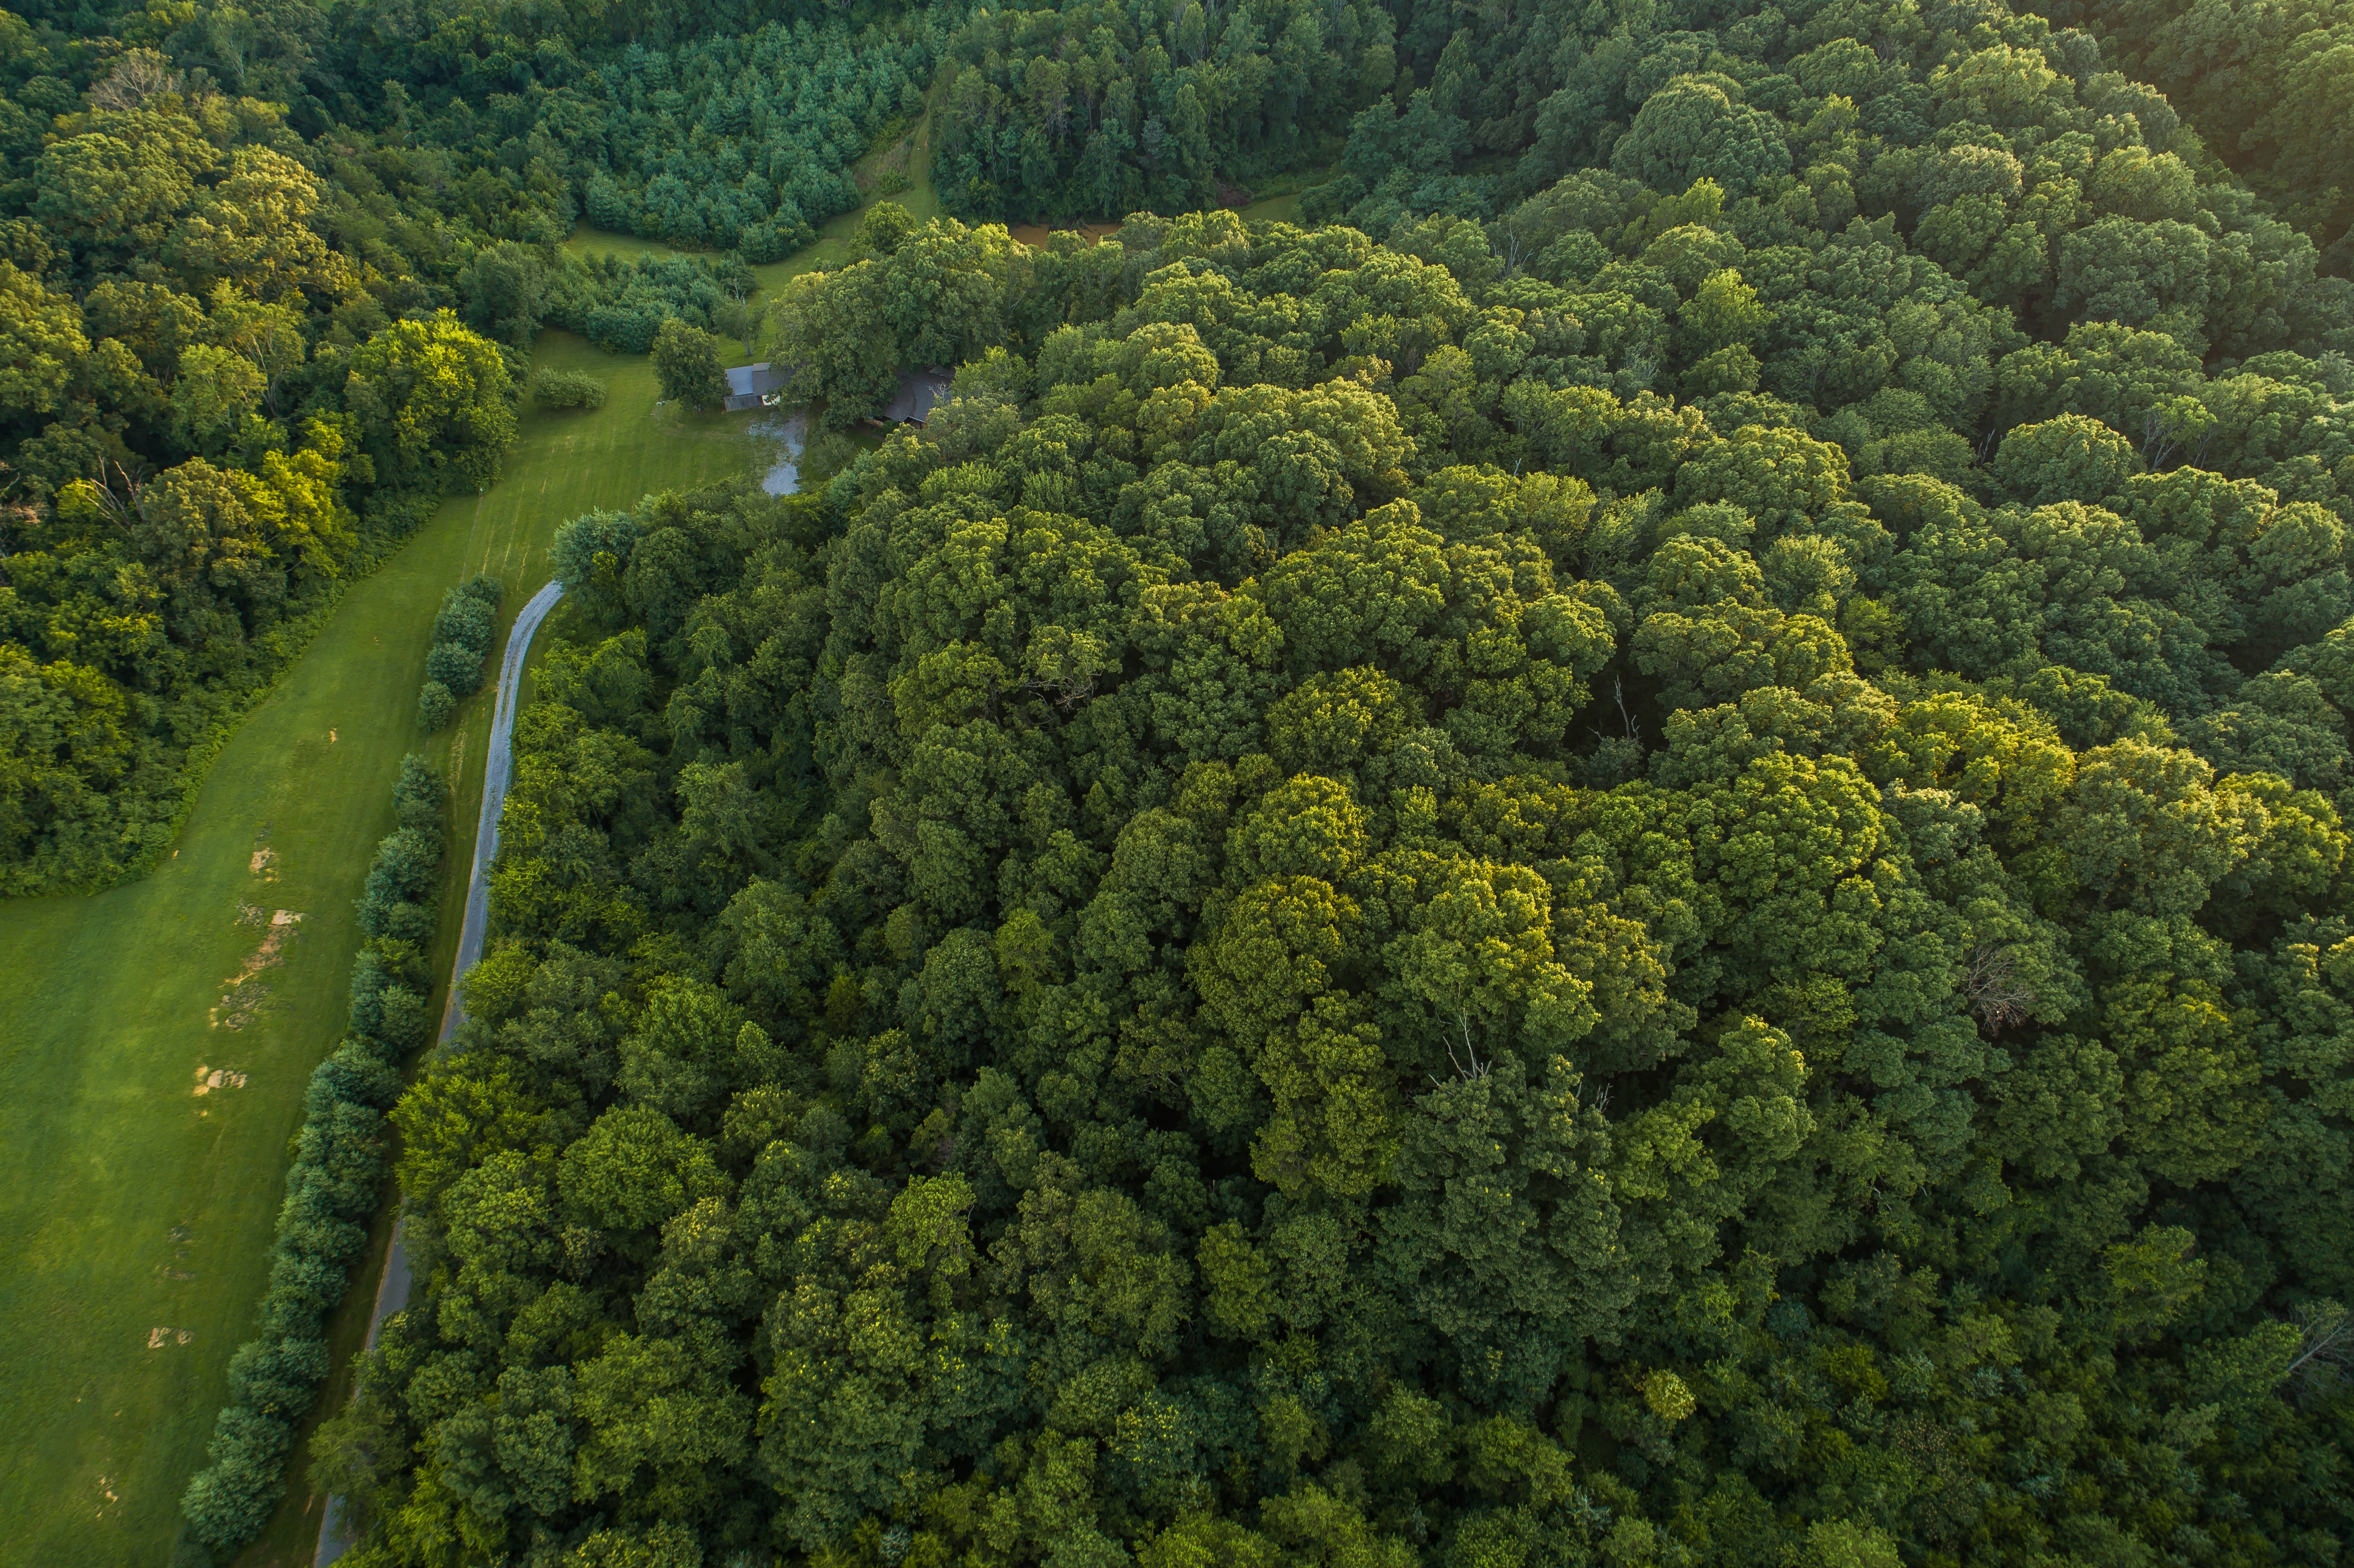 A drone shot of a road running along a green forest in Knoxville, Tennessee